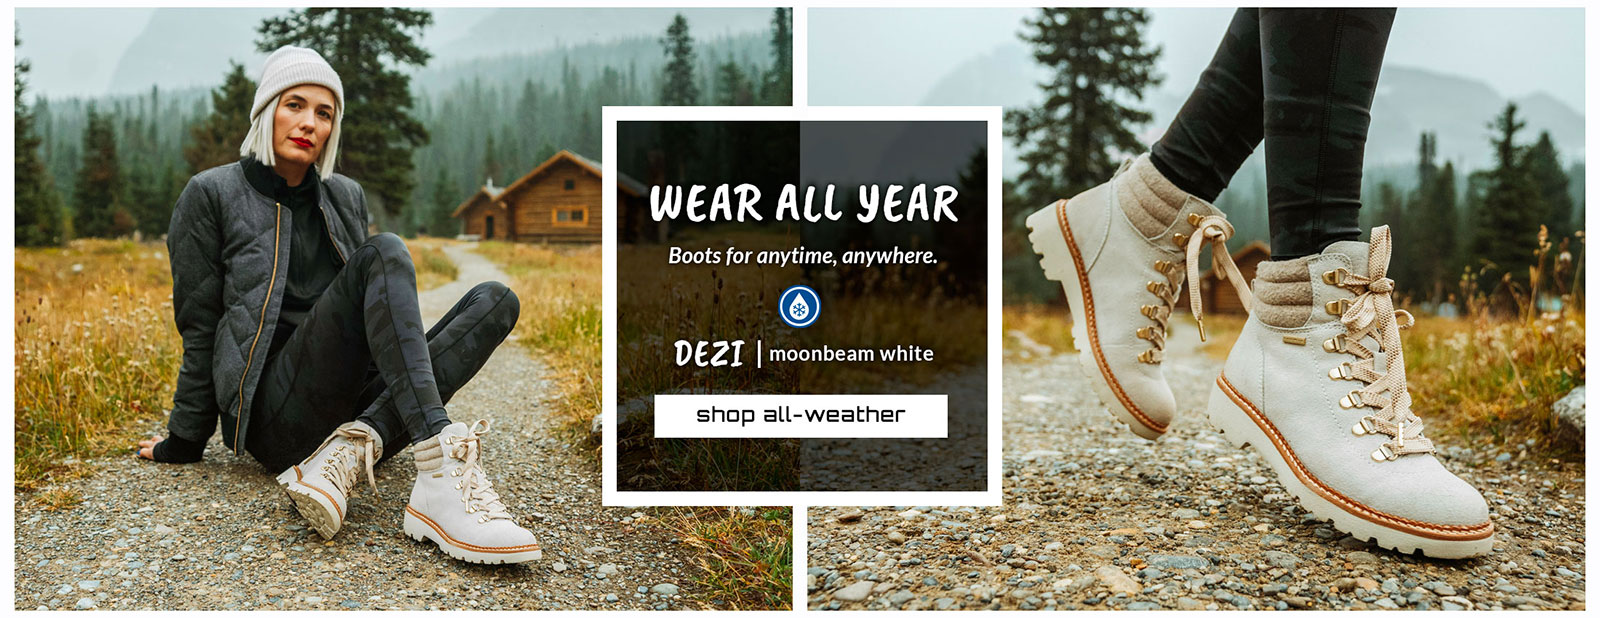 Wear All Year. Boots for anytime, anywhere. Featured style: All-Weather Dezi boot in moonbeam white. Shop All-Weather.